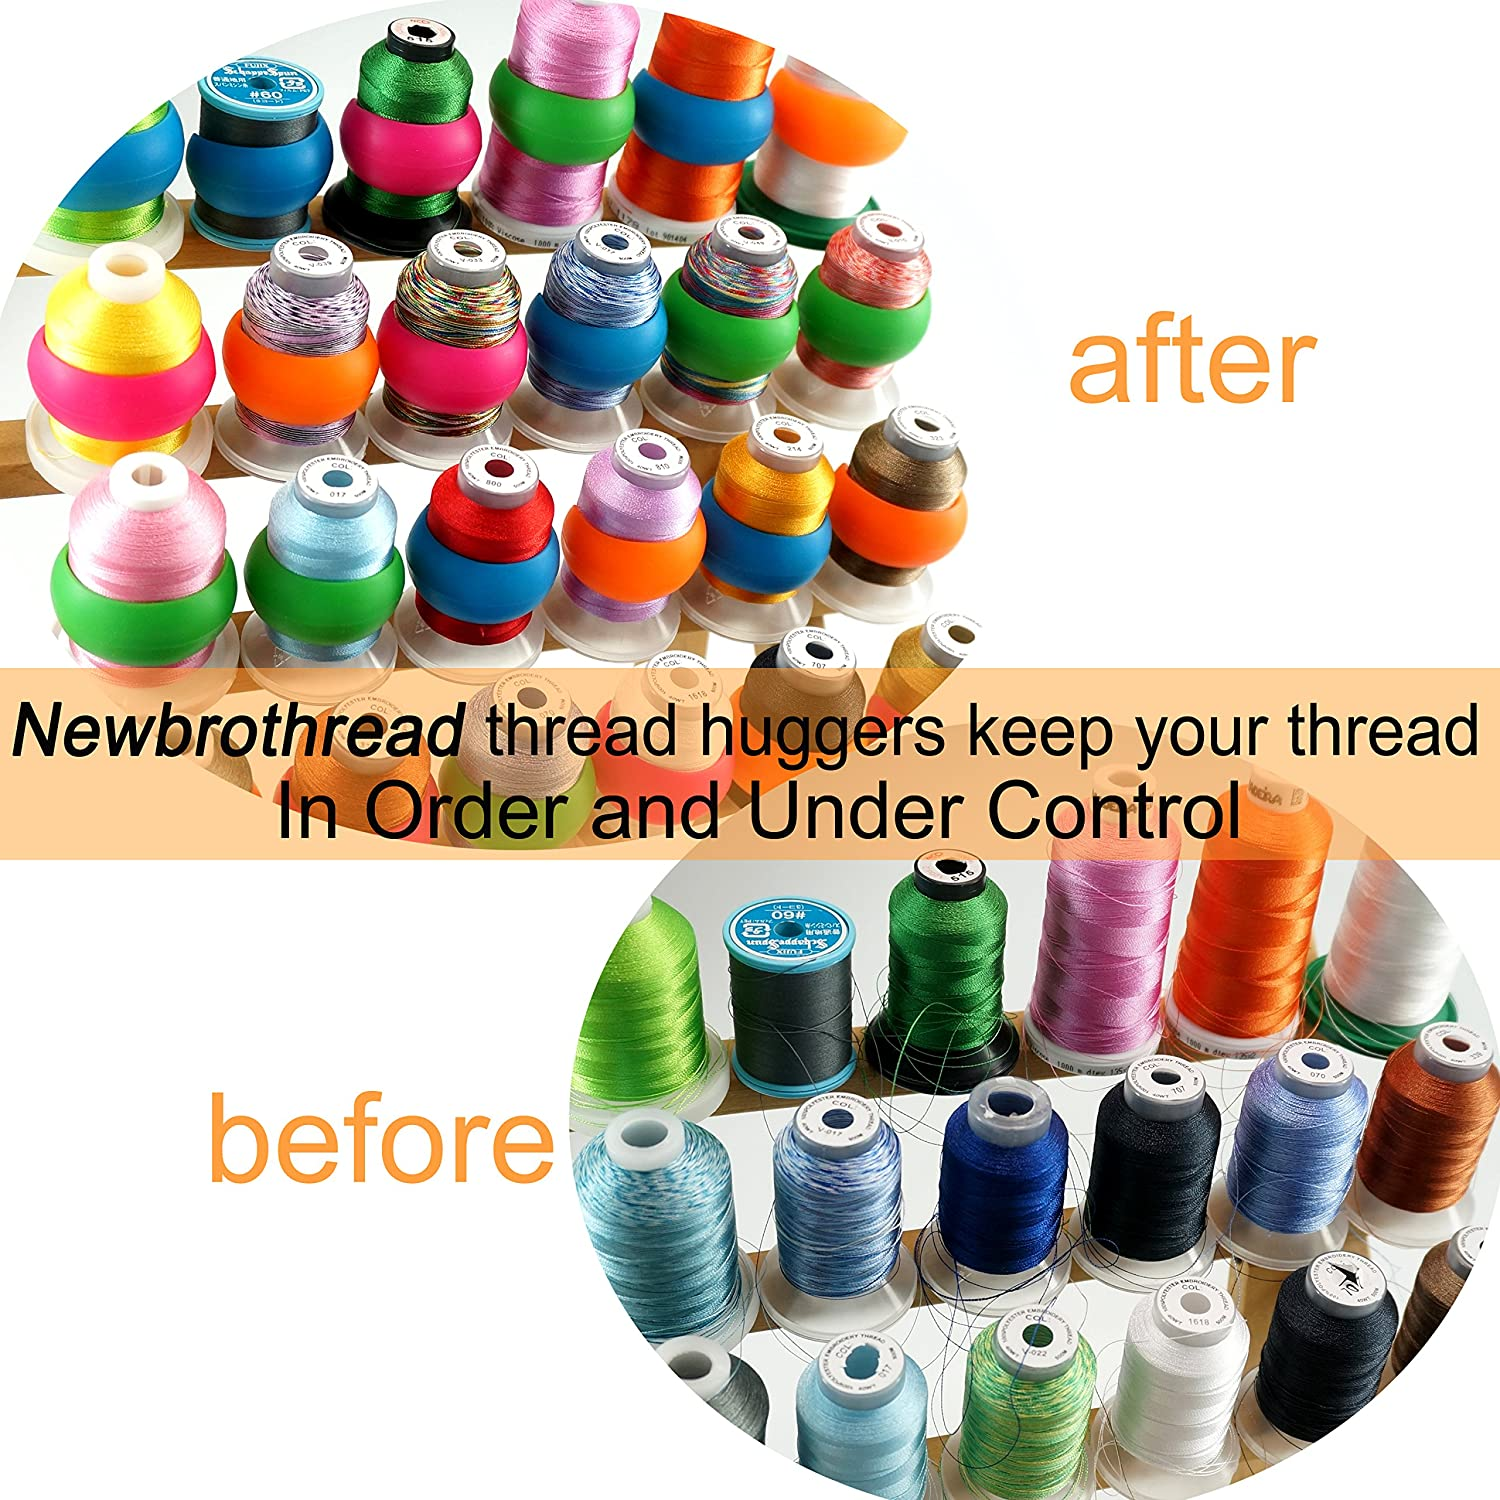 No Loose Ends for Sewing and Embroidery Machine Thread Spools Prevent Thread Tails from Unwinding New brothread 20pcs Thread Spool Huggers